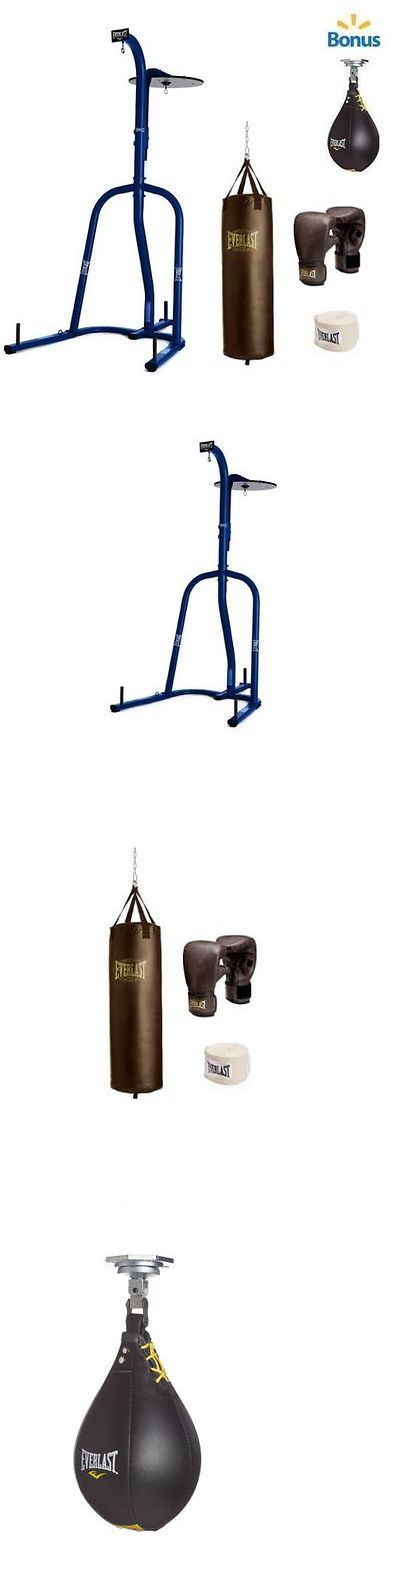 Punching Bags 30101: Dual Station Heavy Bag Stand With 100Lb. Kit And Speedbag Boxing Punching Training -> BUY IT NOW ONLY: $223.89 on eBay!